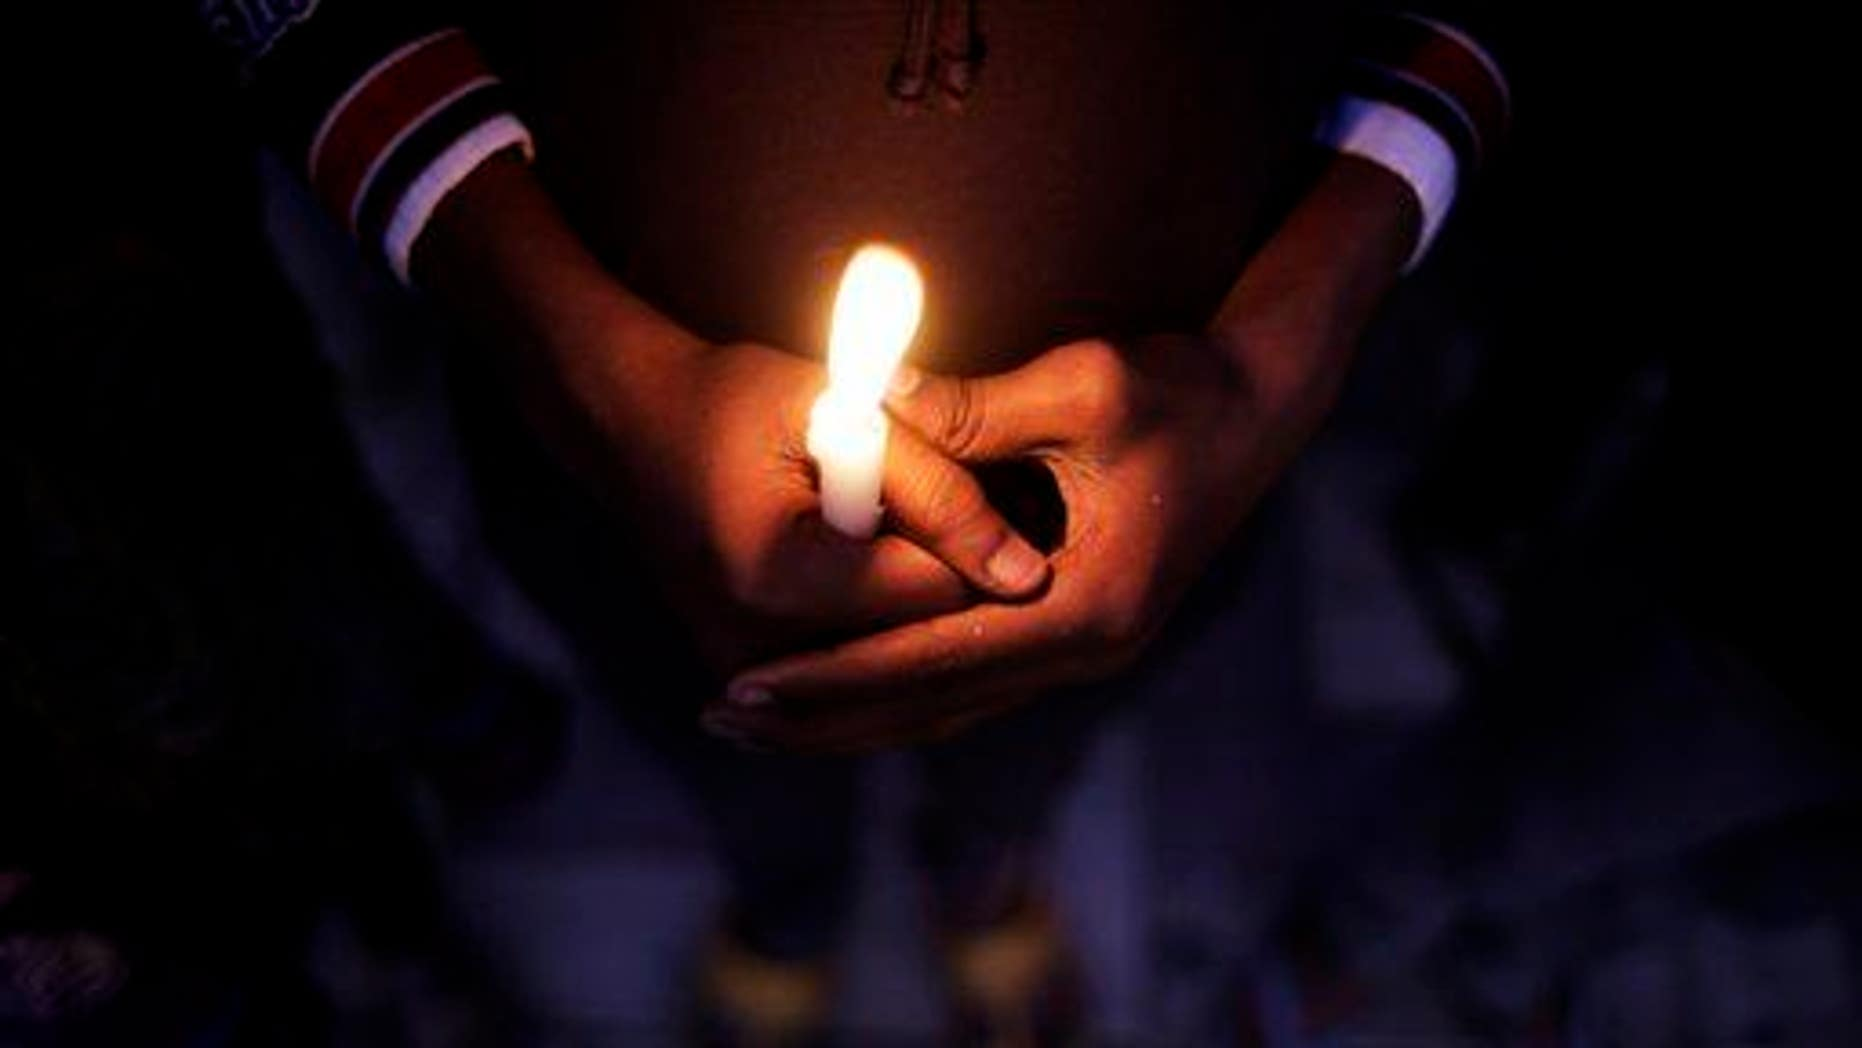 An Indian child holds a candle during a candlelight vigil in New Delhi, India, in this 2014 file photo.